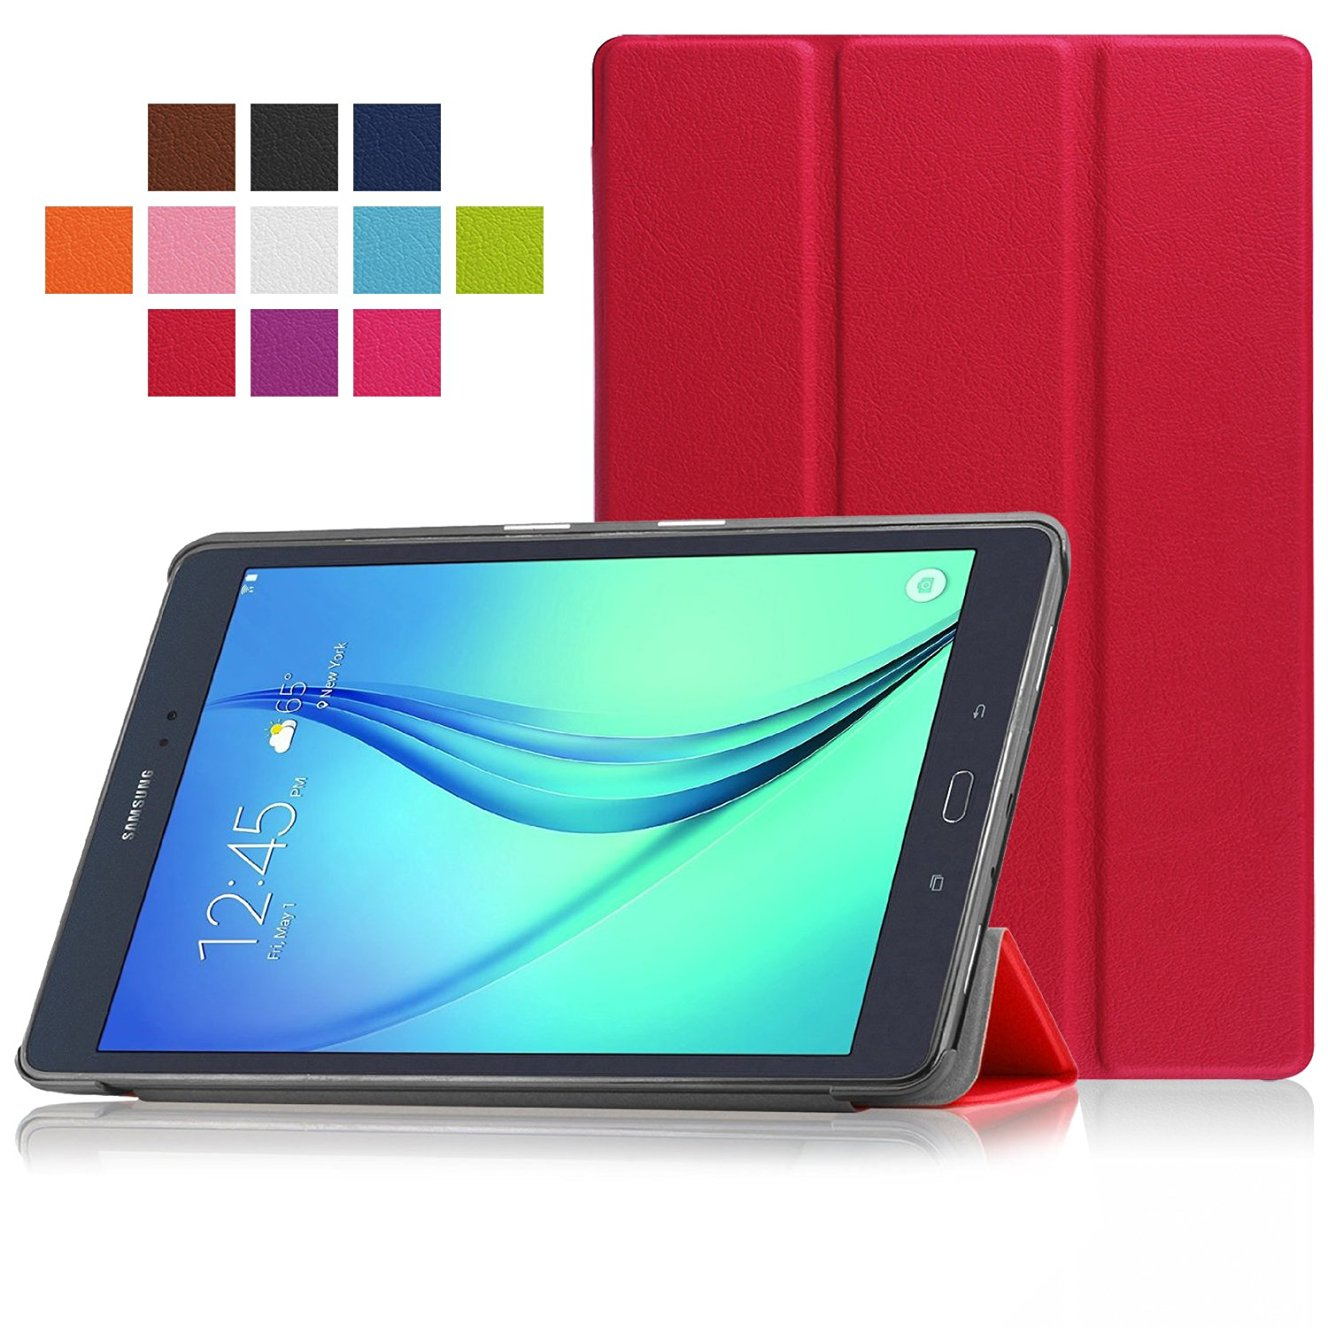 ... Samsung Galaxy Tab A 8.0 SM-T350 8-Inch Tablet Case - PU Leather ...